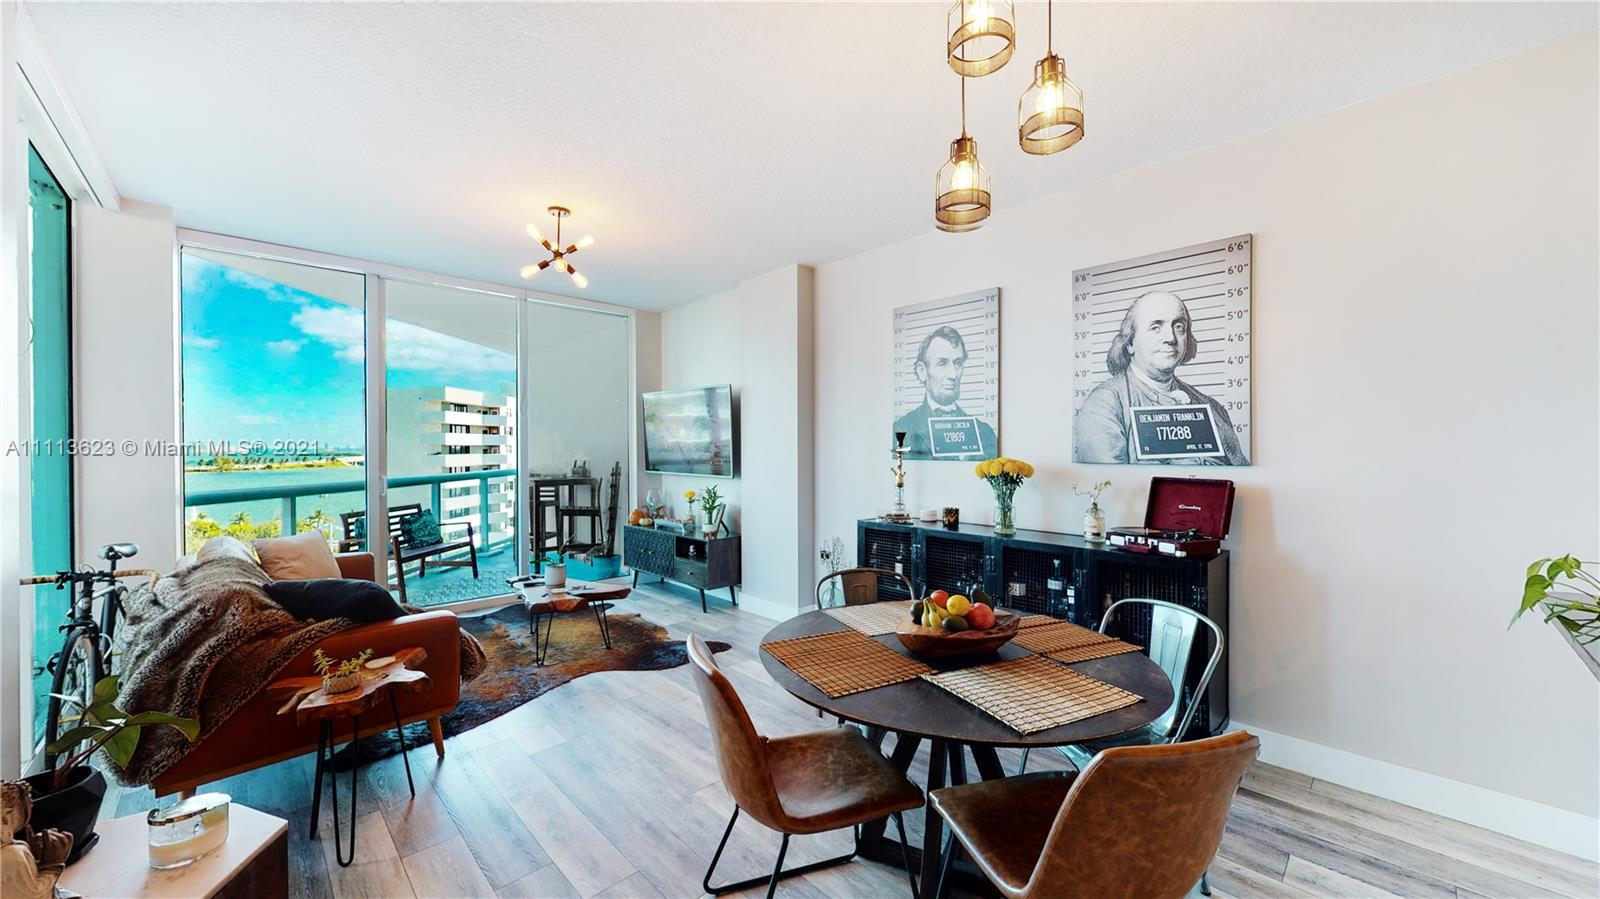 Modern boutique style condo completely redone with beautiful water views  in Miami's Edgewater East.